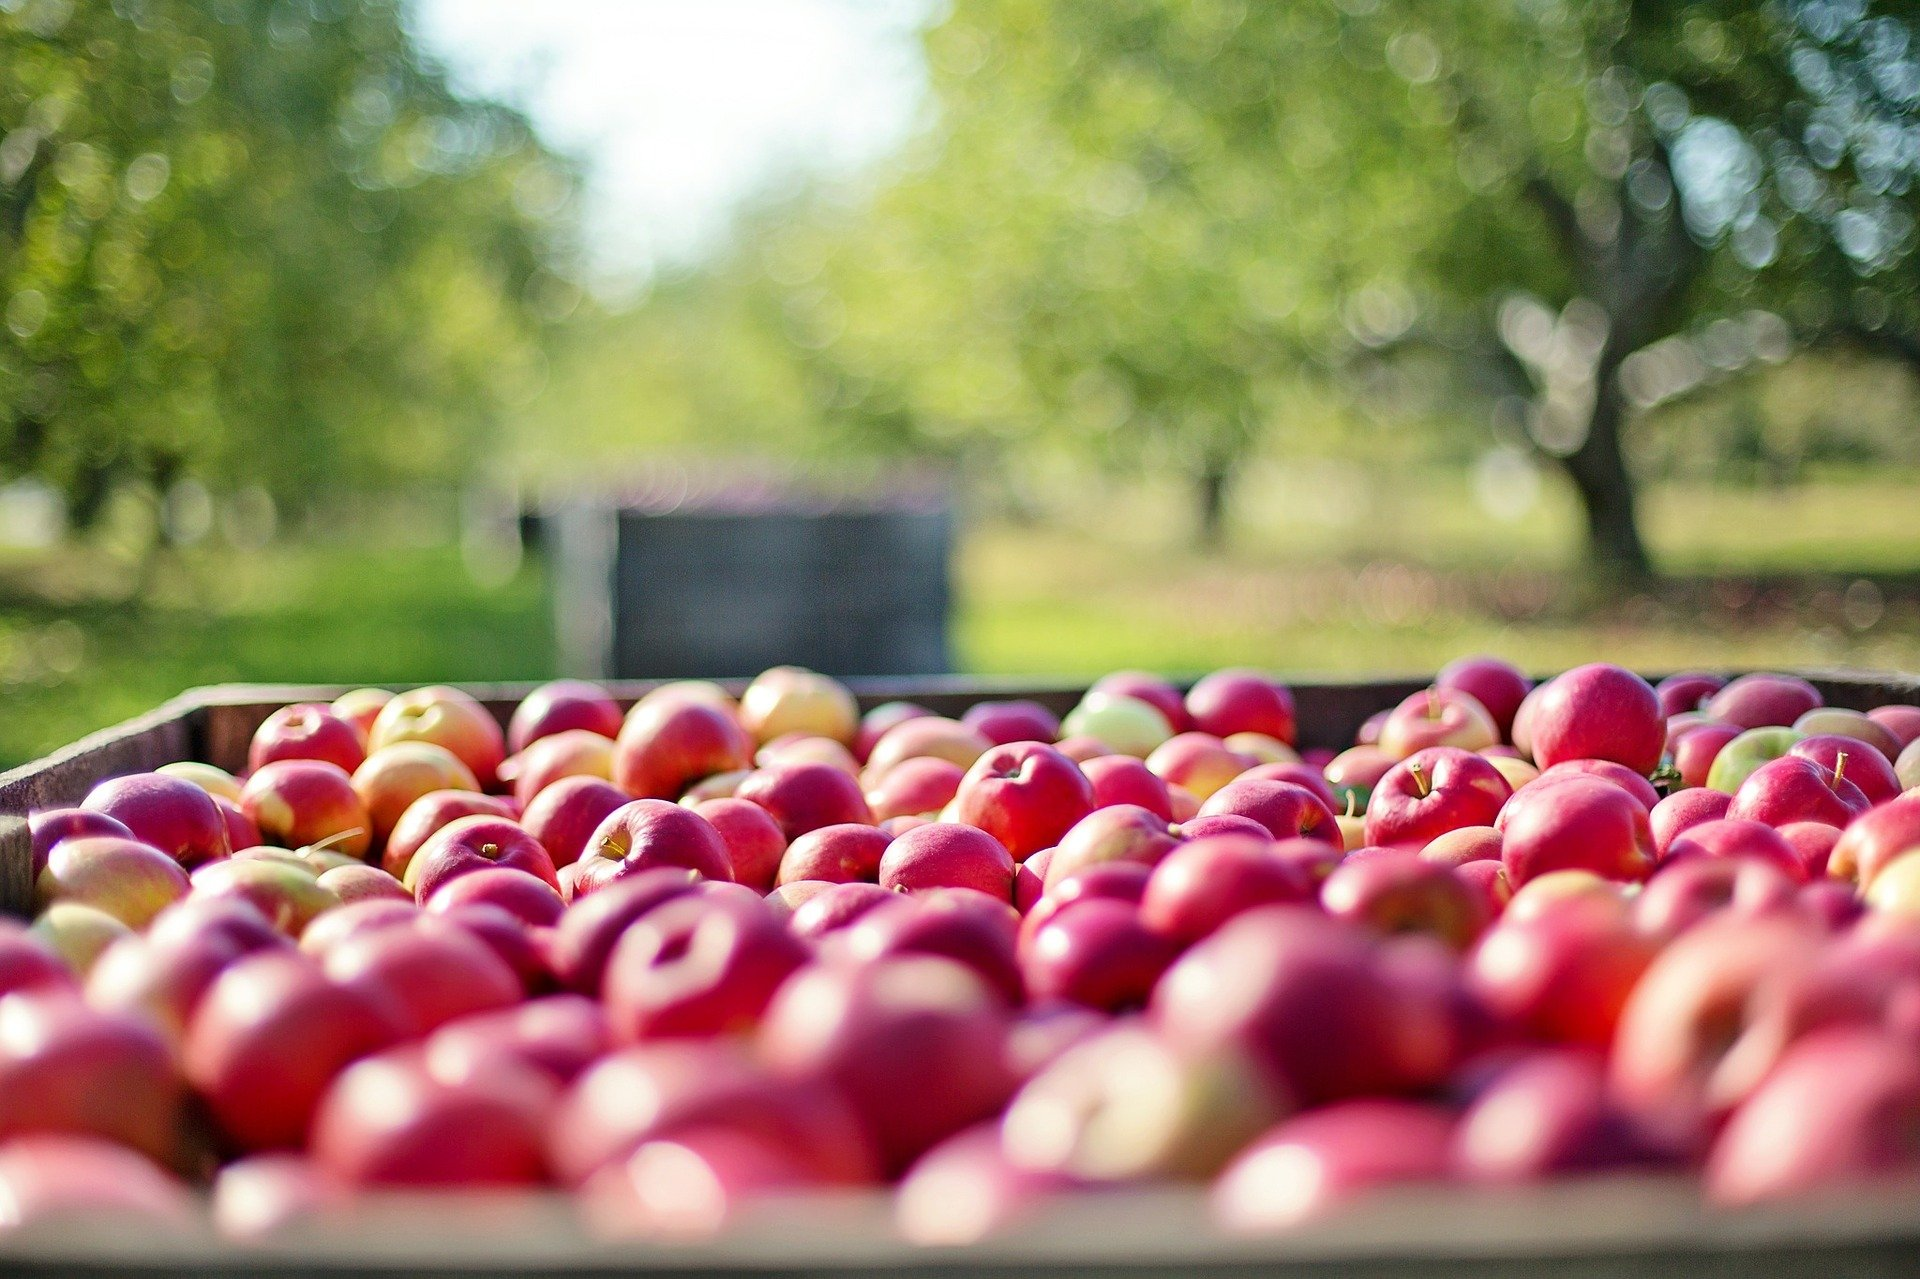 Picked apples in a crate on a farm